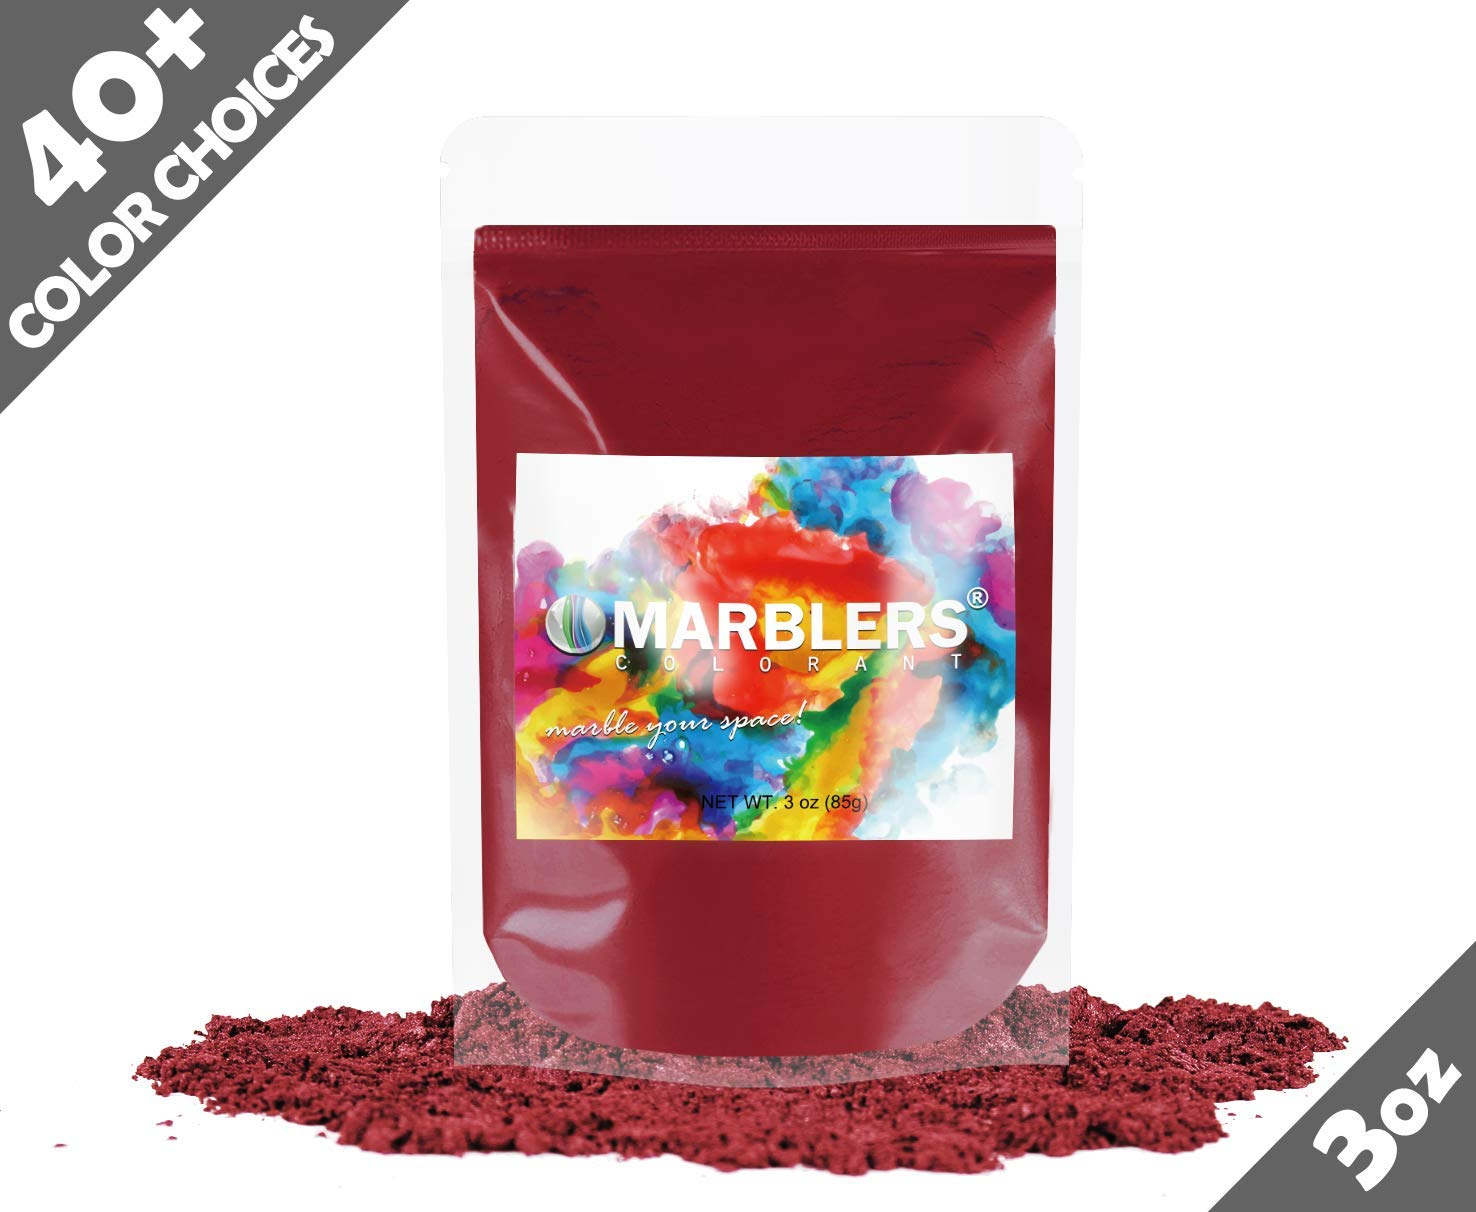 Marblers Powder Colorant 3oz (85g) [Deep Red] | Pearlescent Pigment | Tint | Pure Mica Powder for Resin | Dye | Non-Toxic | Great for Epoxy, Soap, Nail Polish, Cosmetics and Bath Bombs